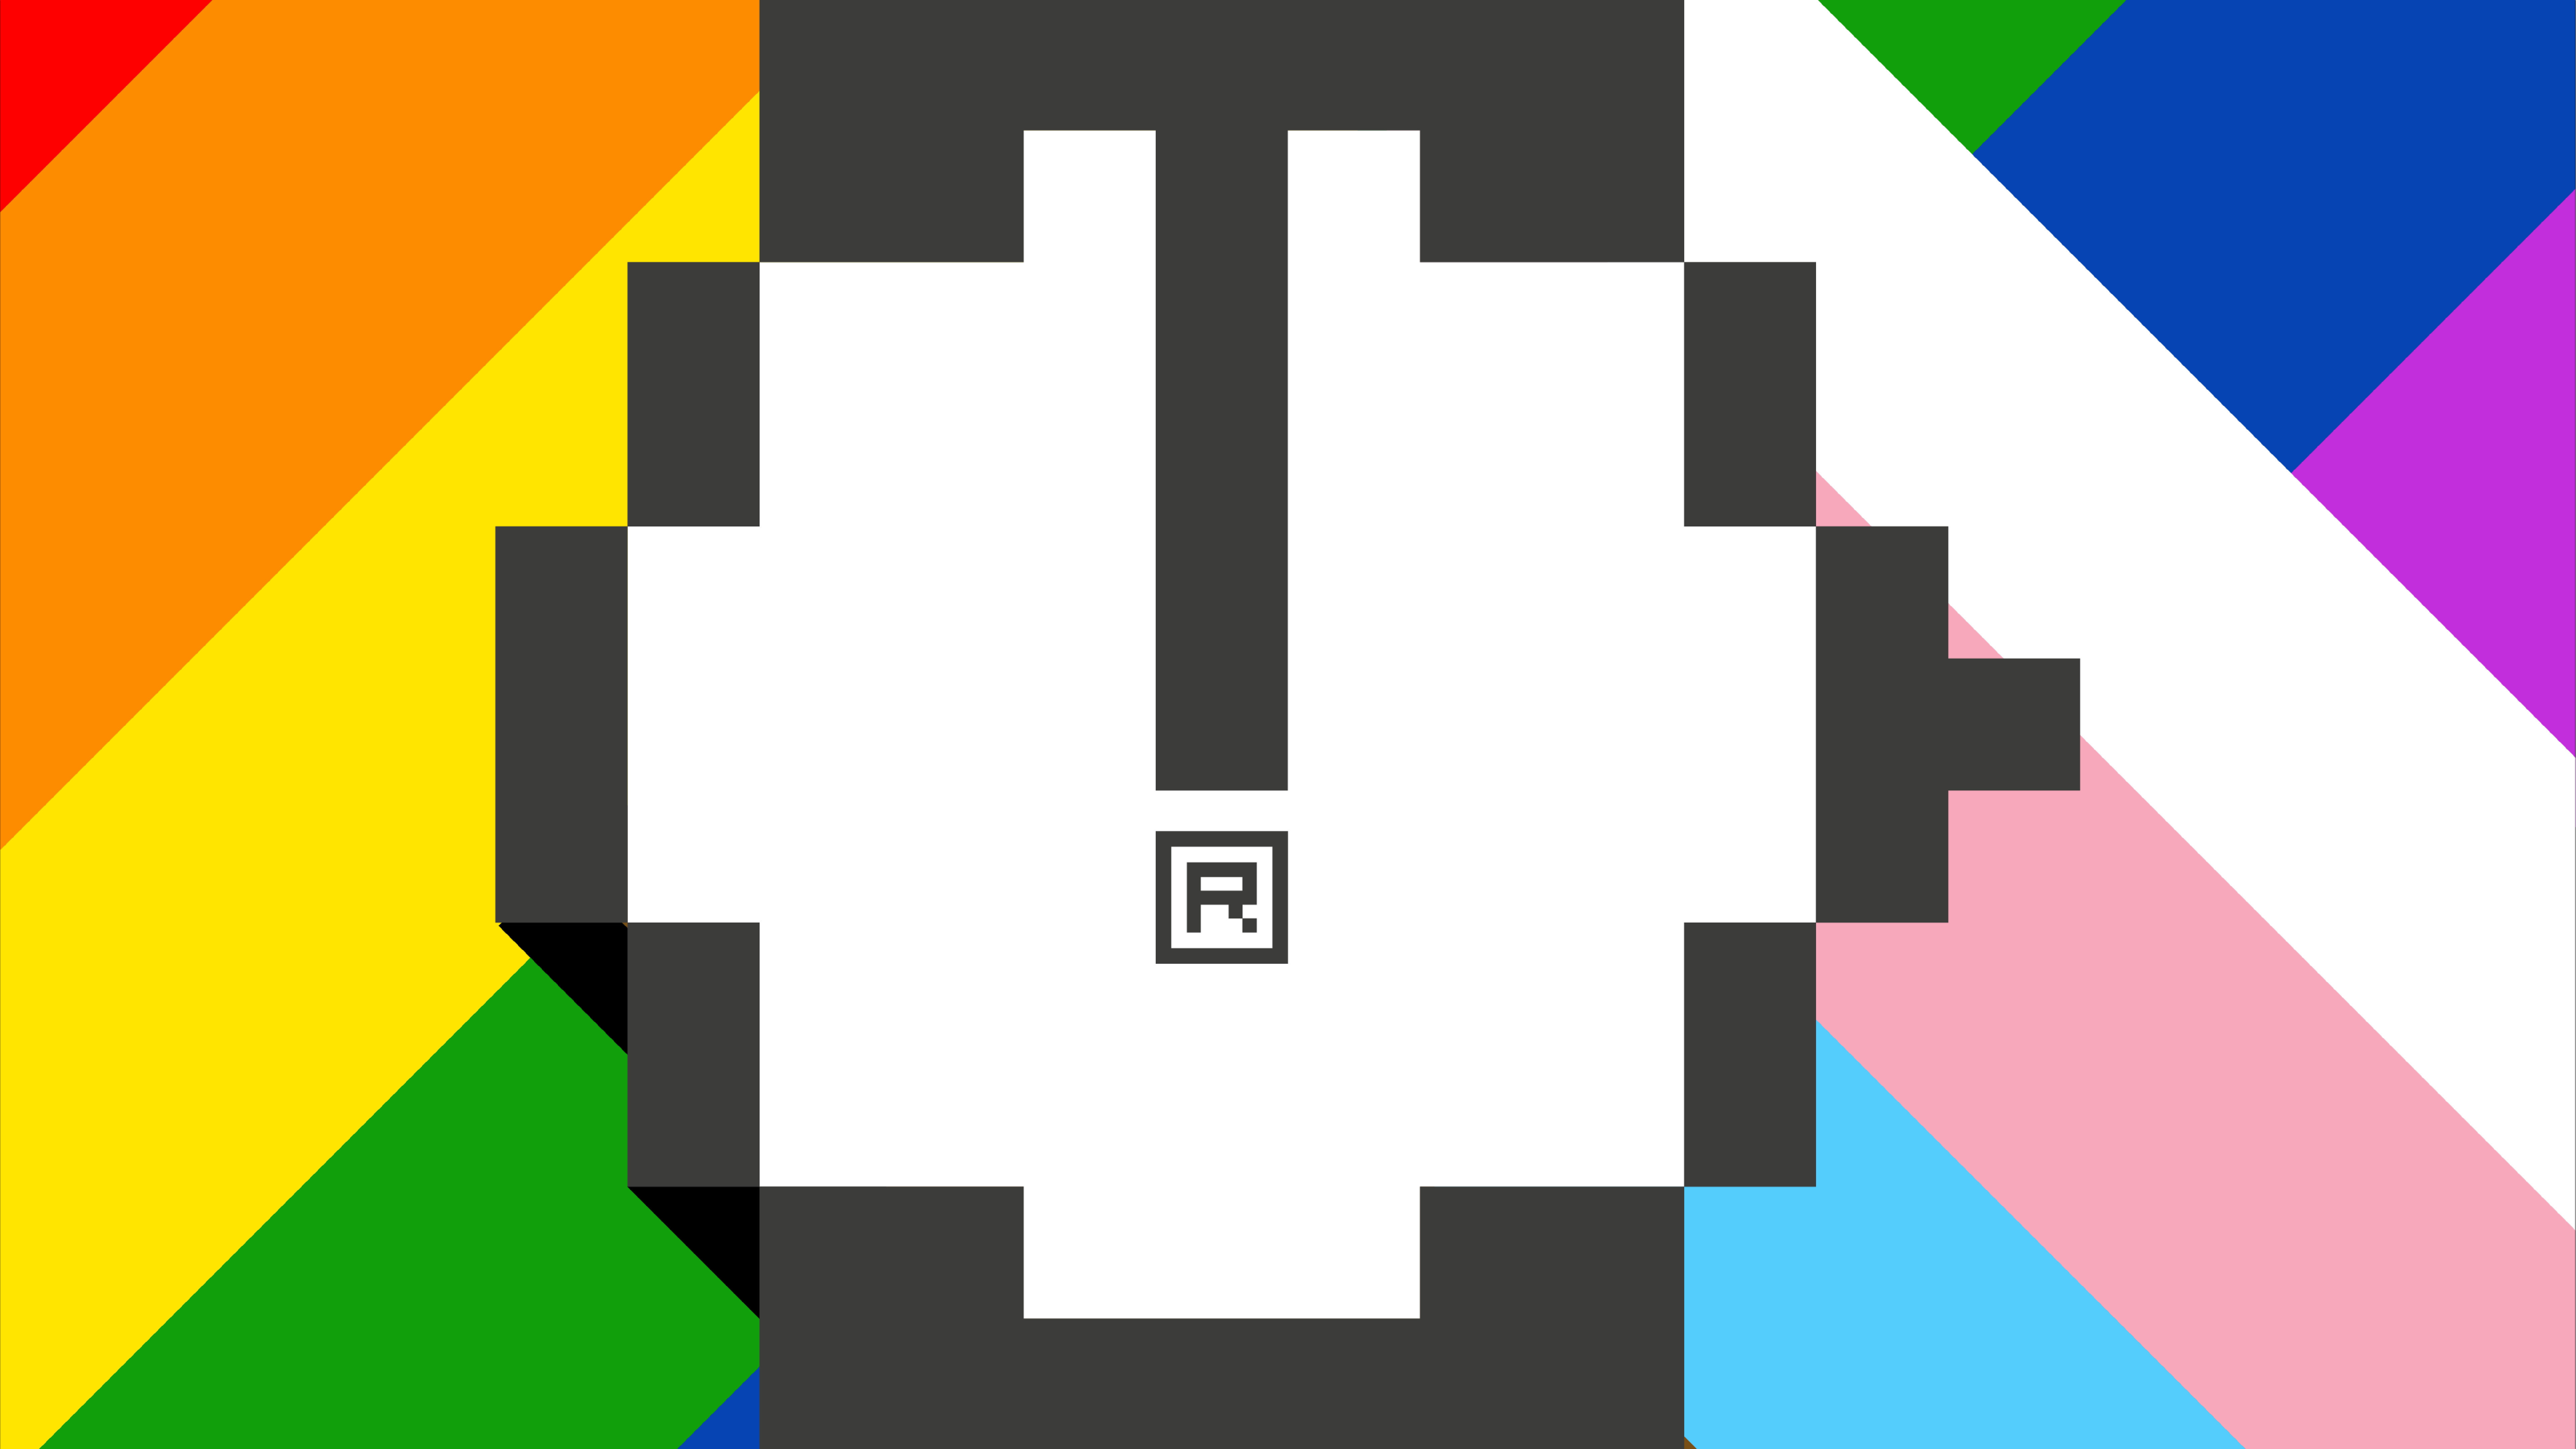 /the-rainbowfication-of-the-hacker-noon-logo-happy-pride-month-hr4c34l9 feature image